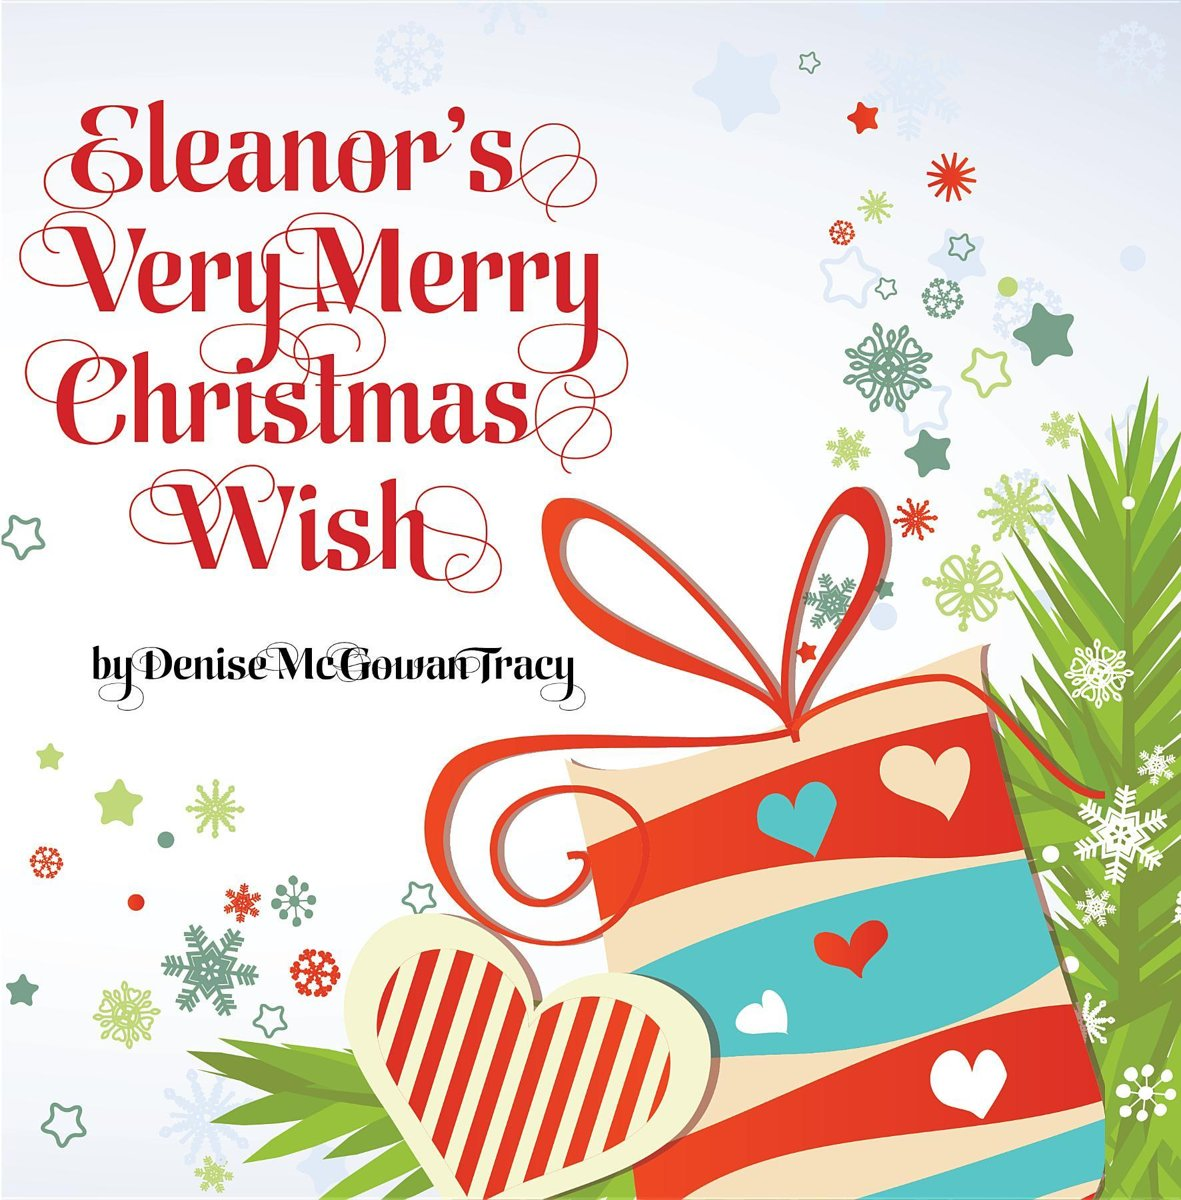 Eleanor's Very Merry Christmas Wish